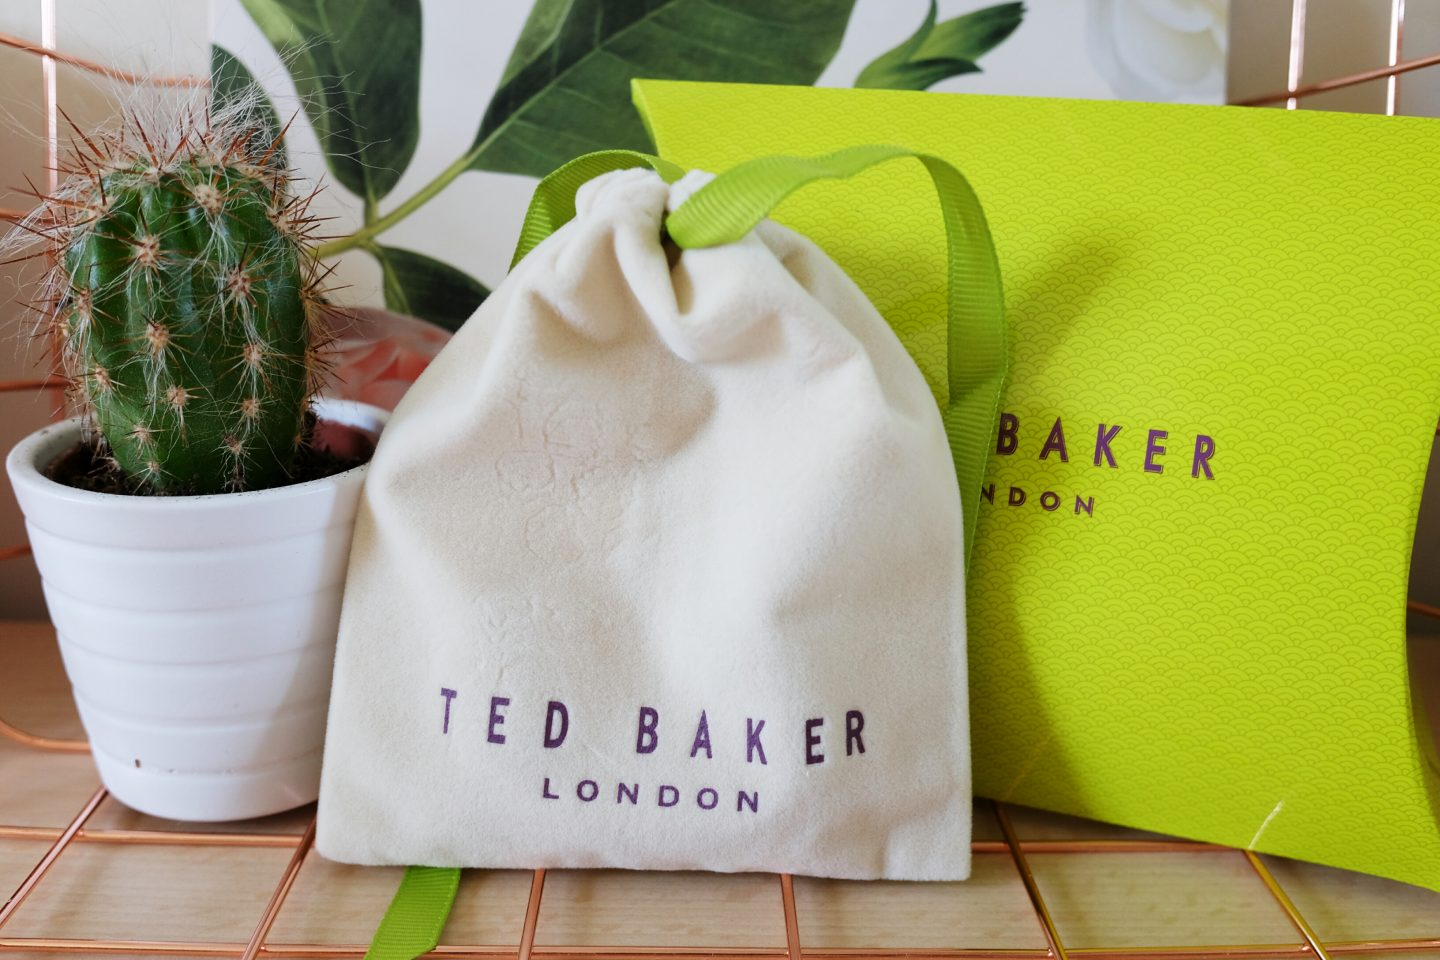 Mother's Day Gift: Ted Baker bag in white and green.